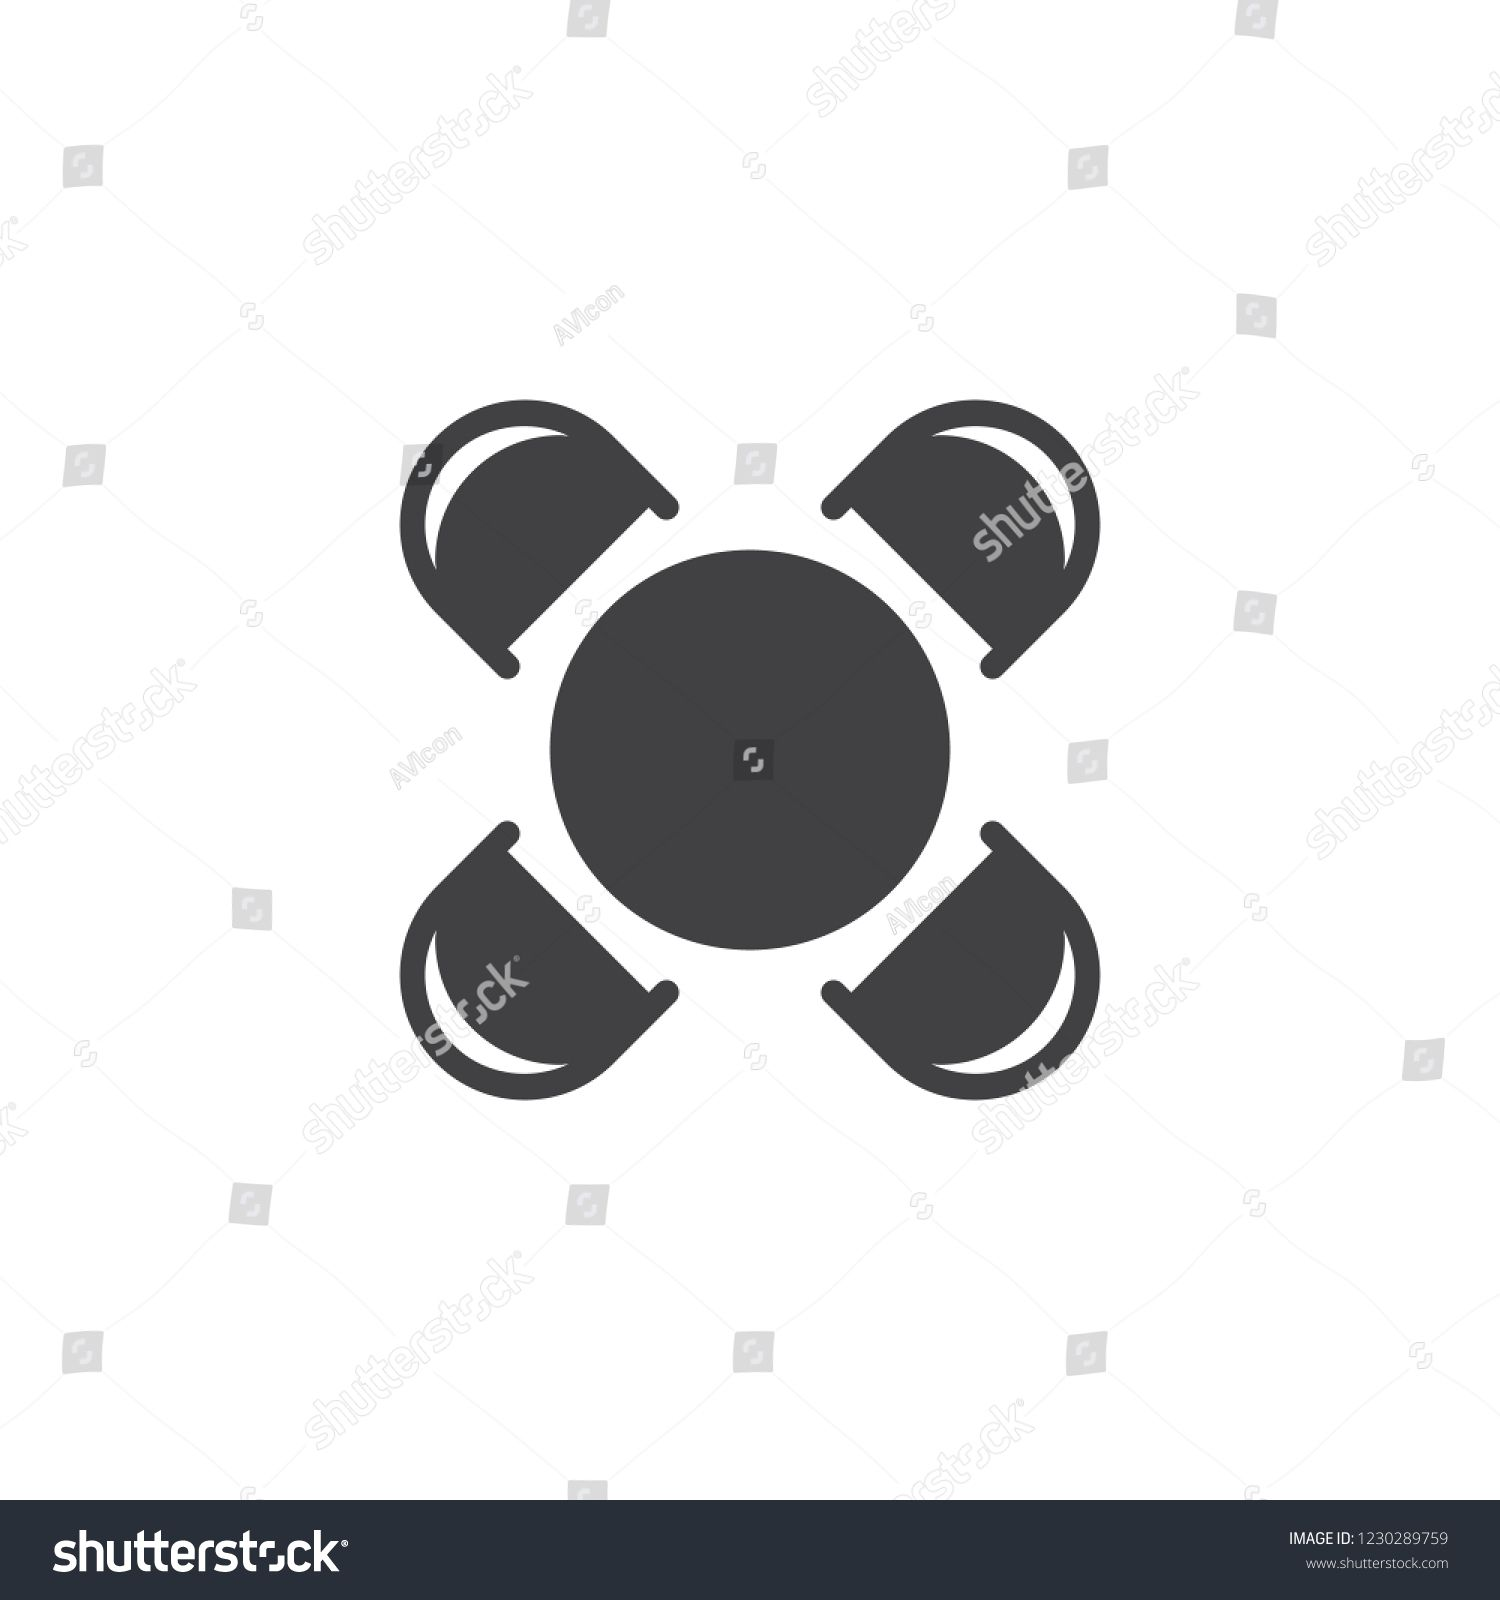 Round Table And Chairs Top View Vector Icon Filled Flat Sign For Mobile Concept And Web Design In 2020 Round Table And Chairs Logo Illustration Children Illustration